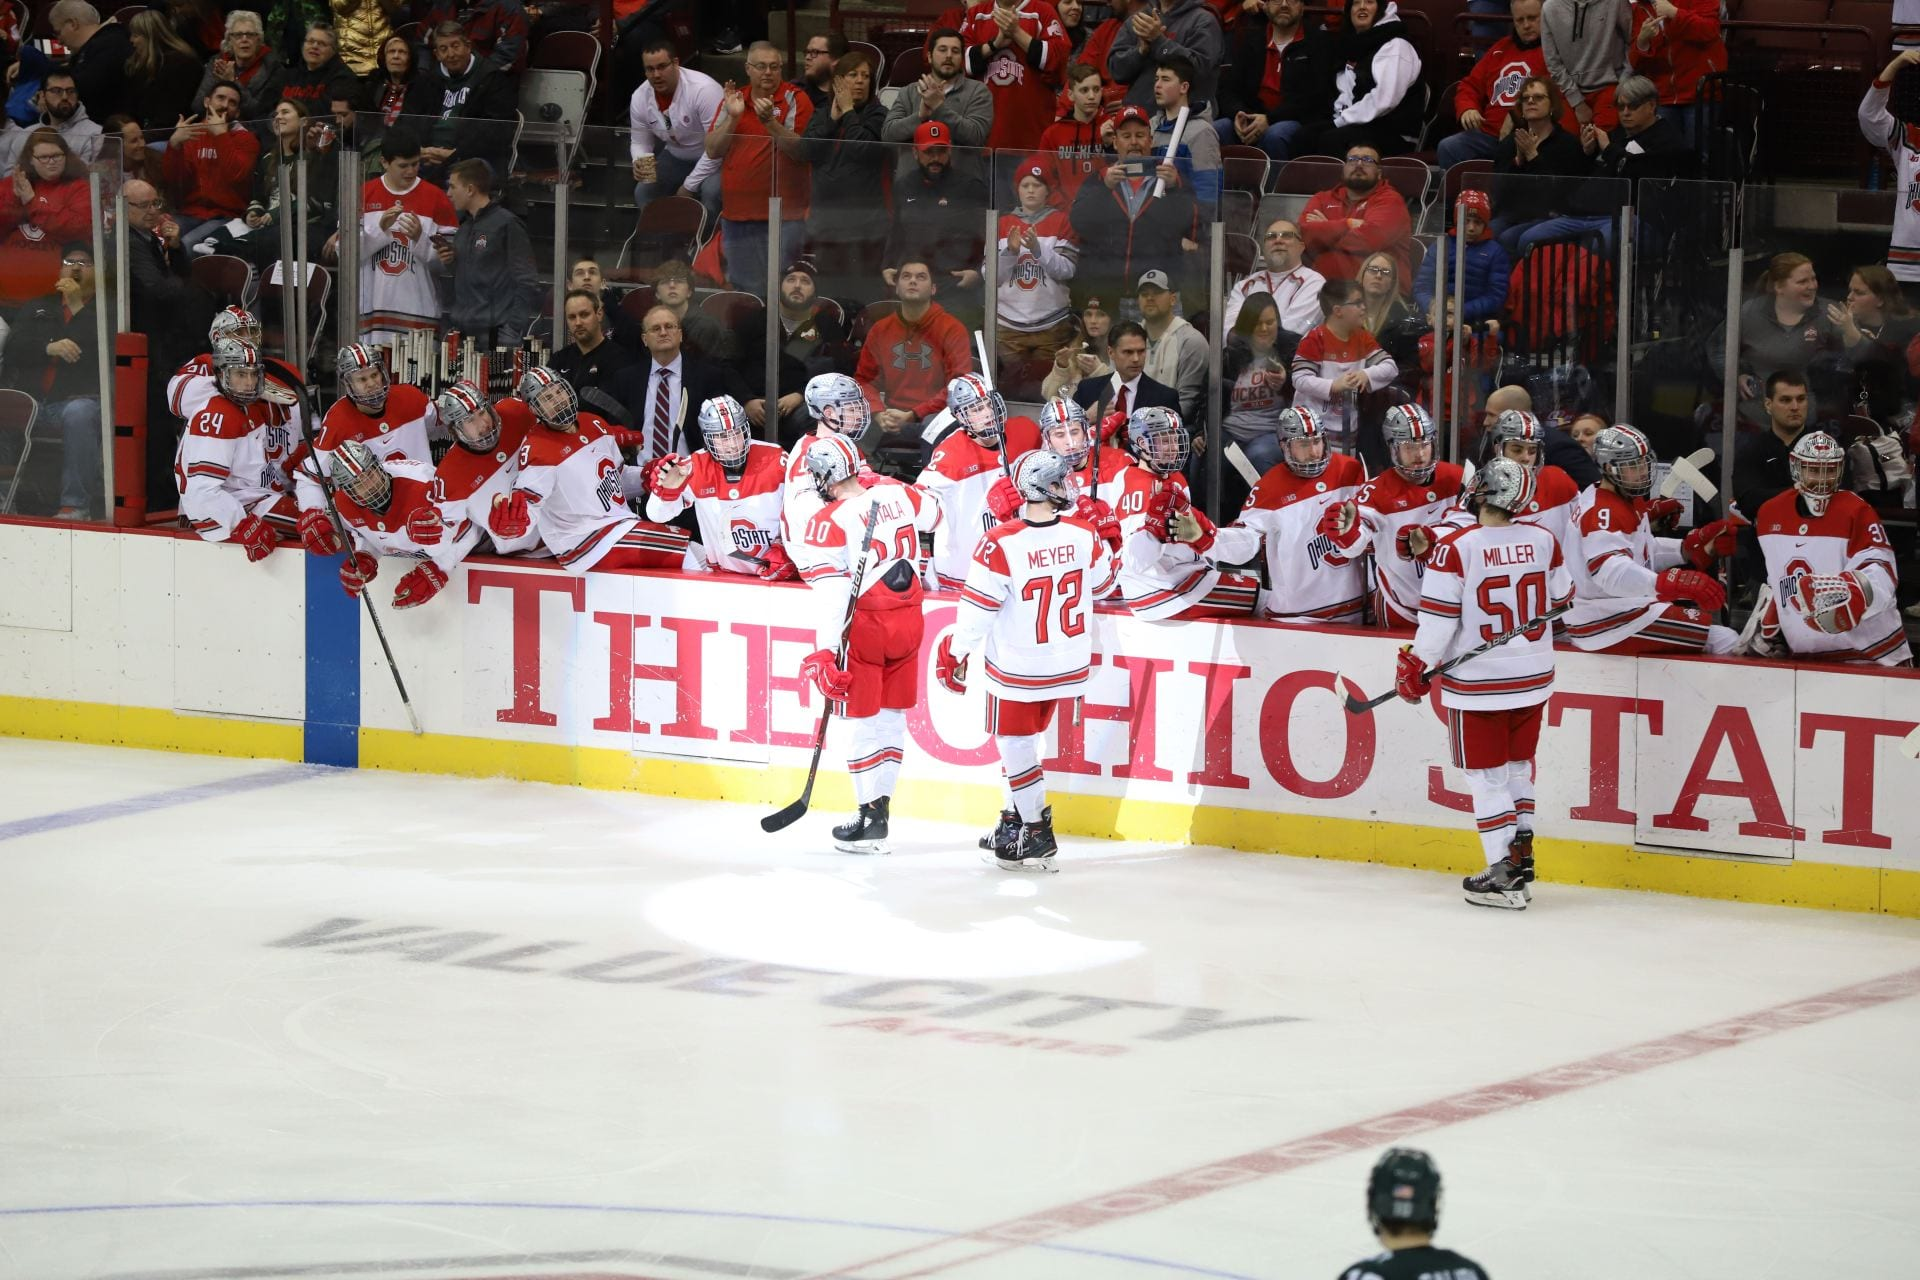 Ohio State hockey players celebrate a goal.